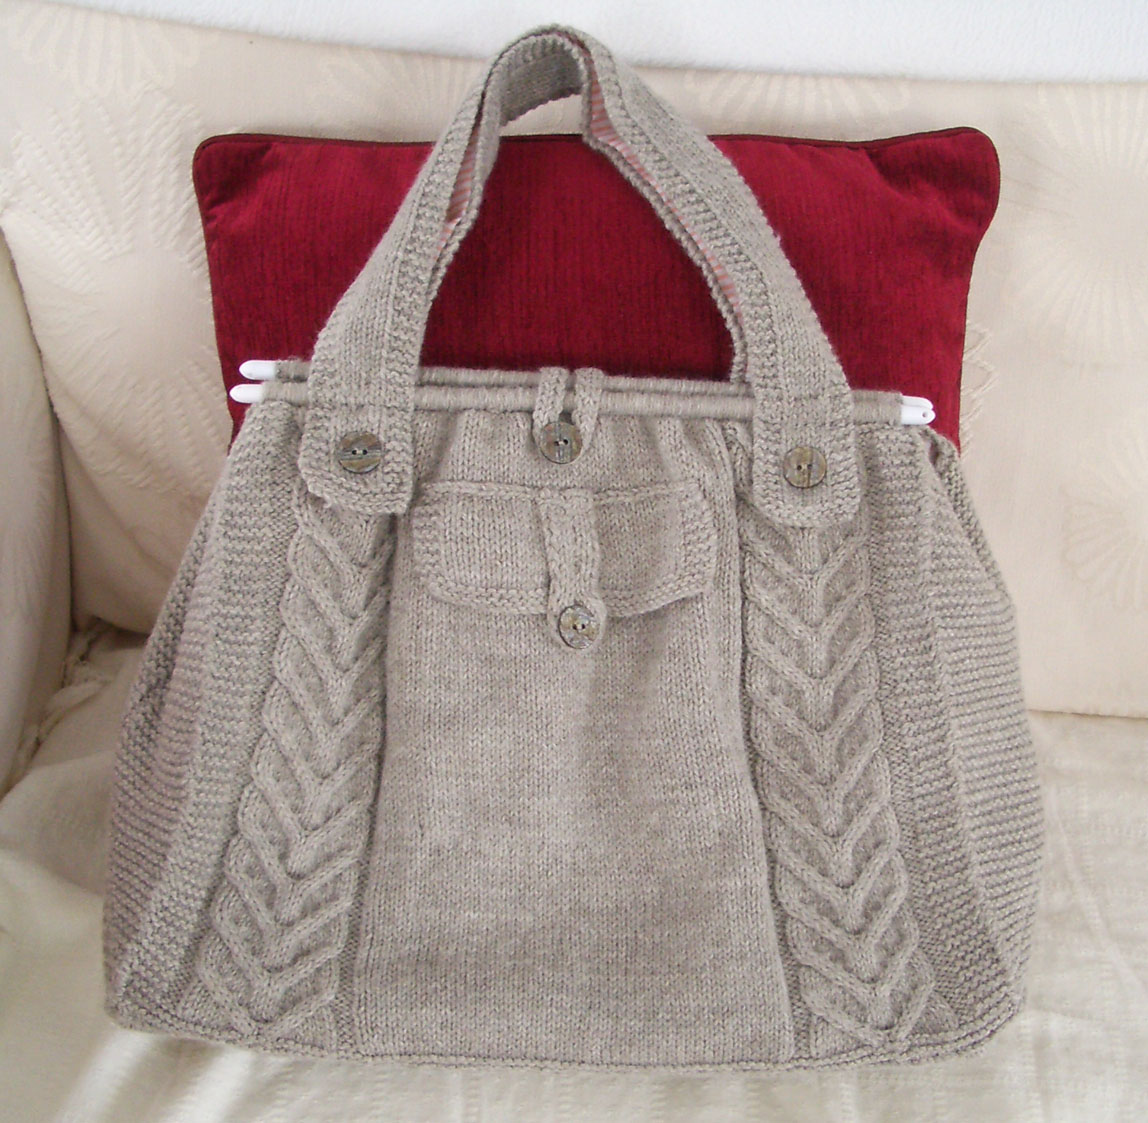 Knitted Tote Bag Pattern : Knitted Creations: Cable Tote